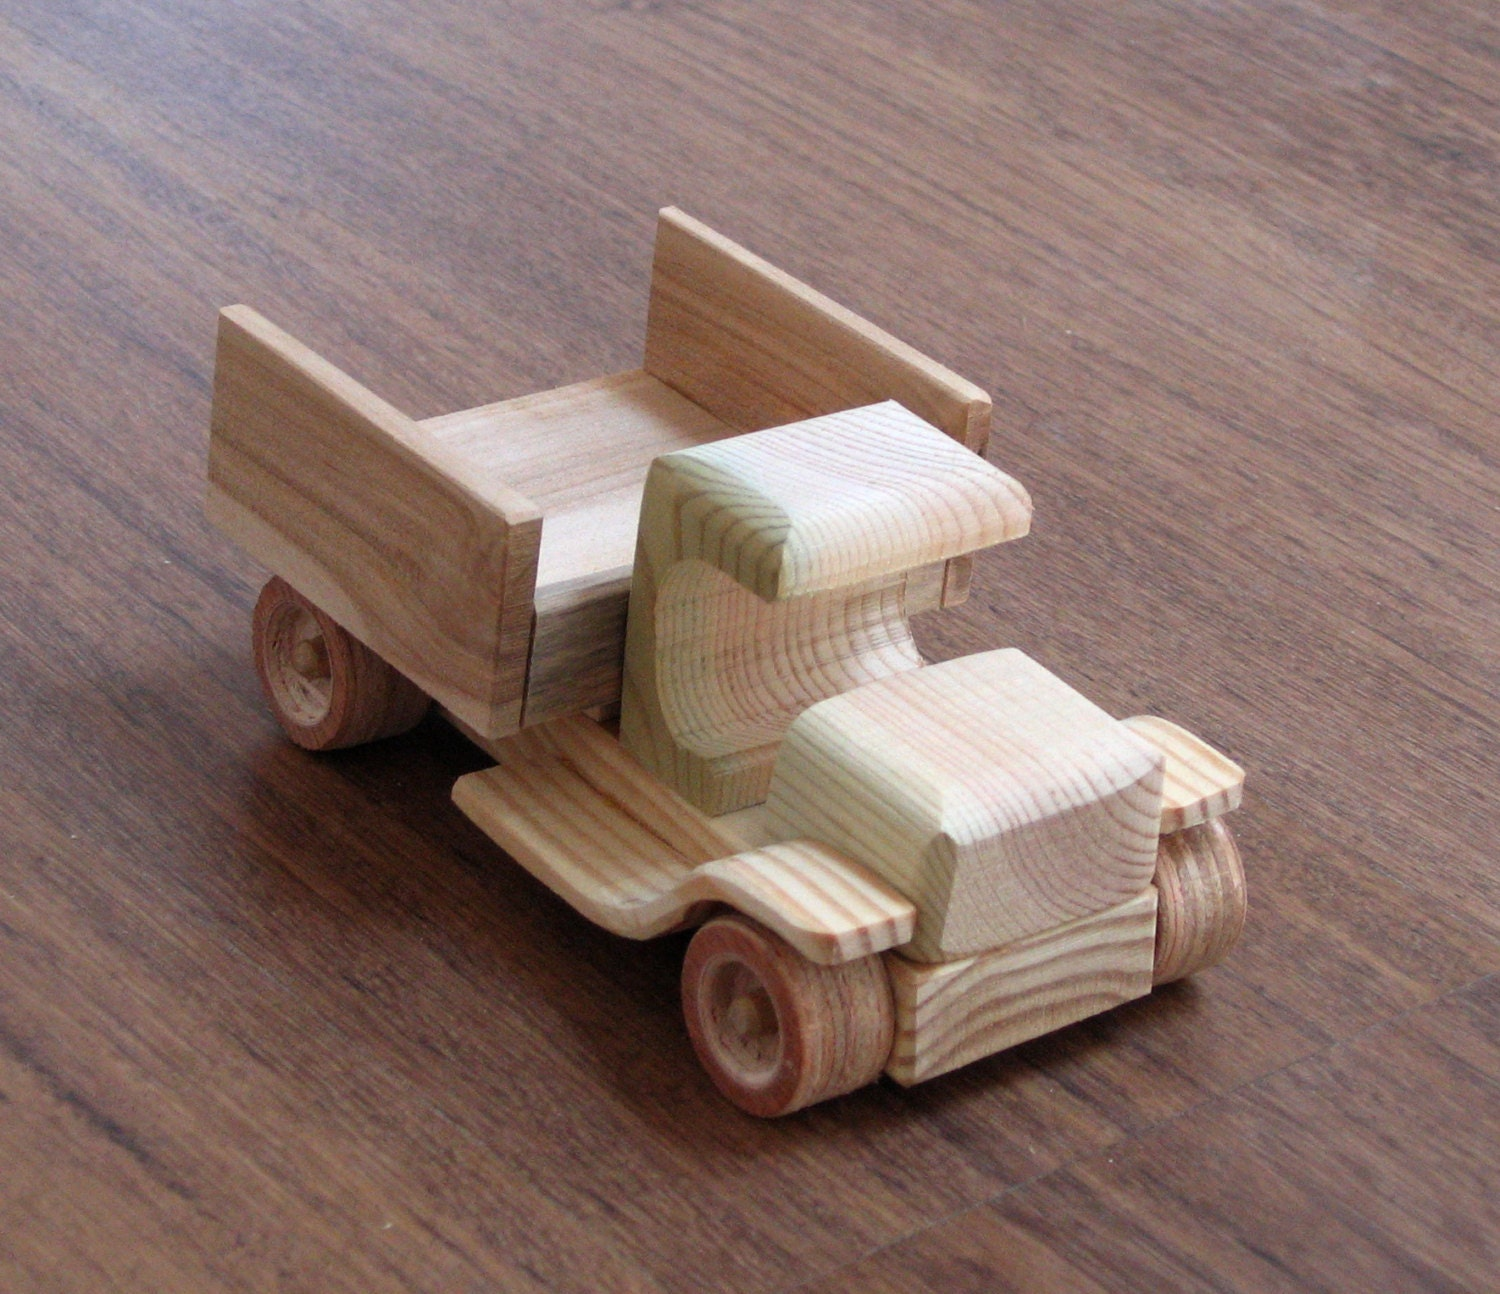 Wooden Toy Cars And Trucks : Wendy the vintage car old style wooden toy pickup truck